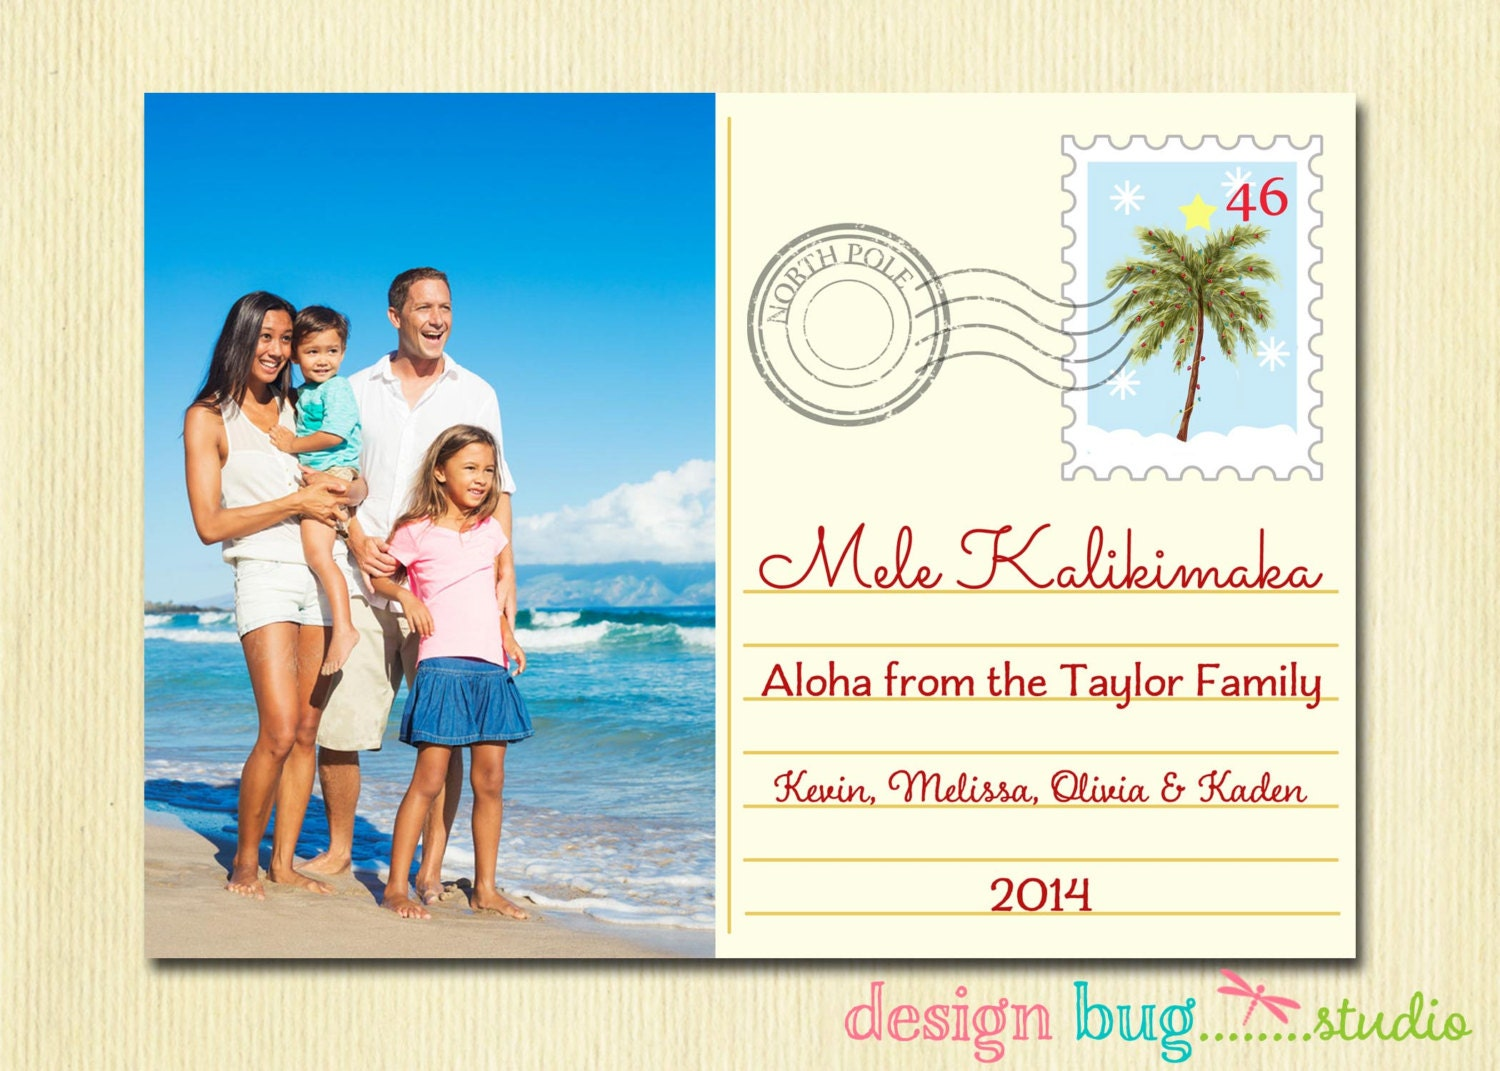 Hawaiian Christmas Card - Mele Kalikimaka - Family Holiday Photo Card - Hawaii Christmas Vacation Postcard - 1, 2 or 3 Pictures